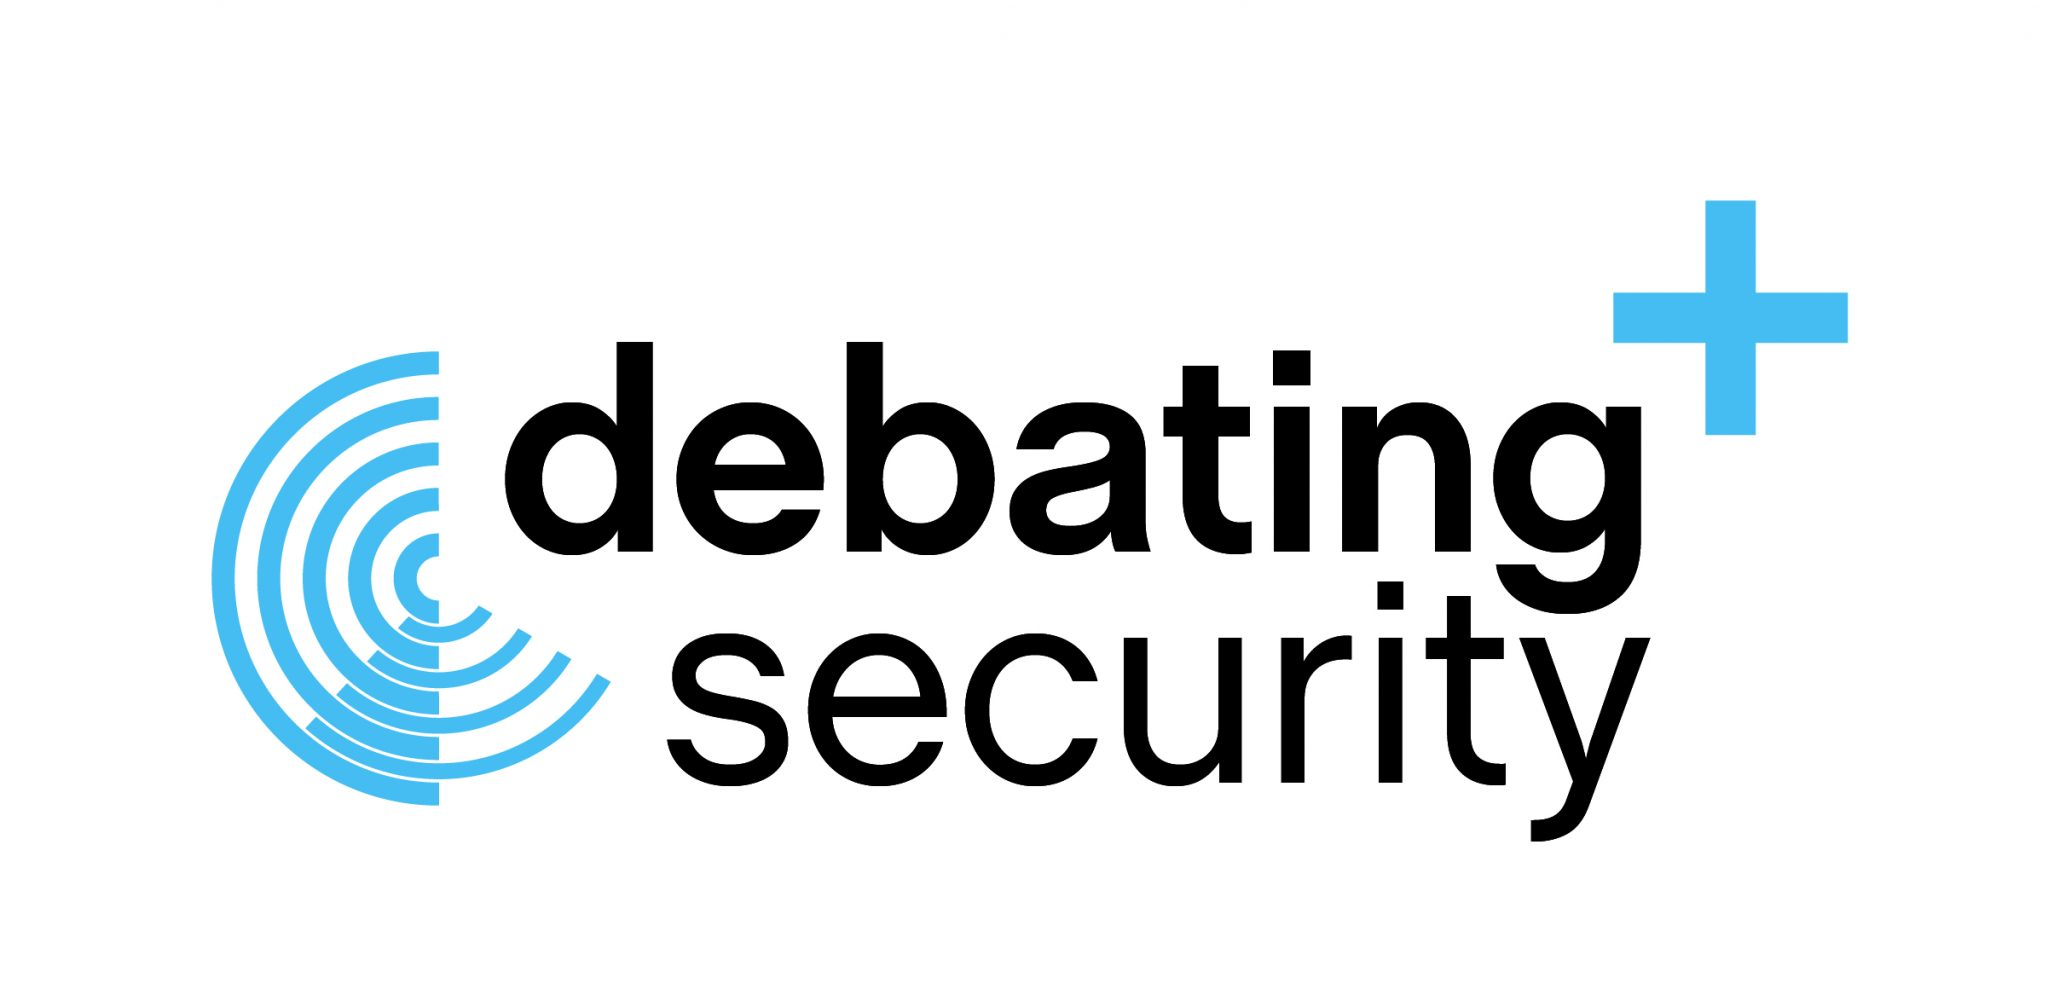 DEBATING SECURITY PLUS - The global online brainstorm